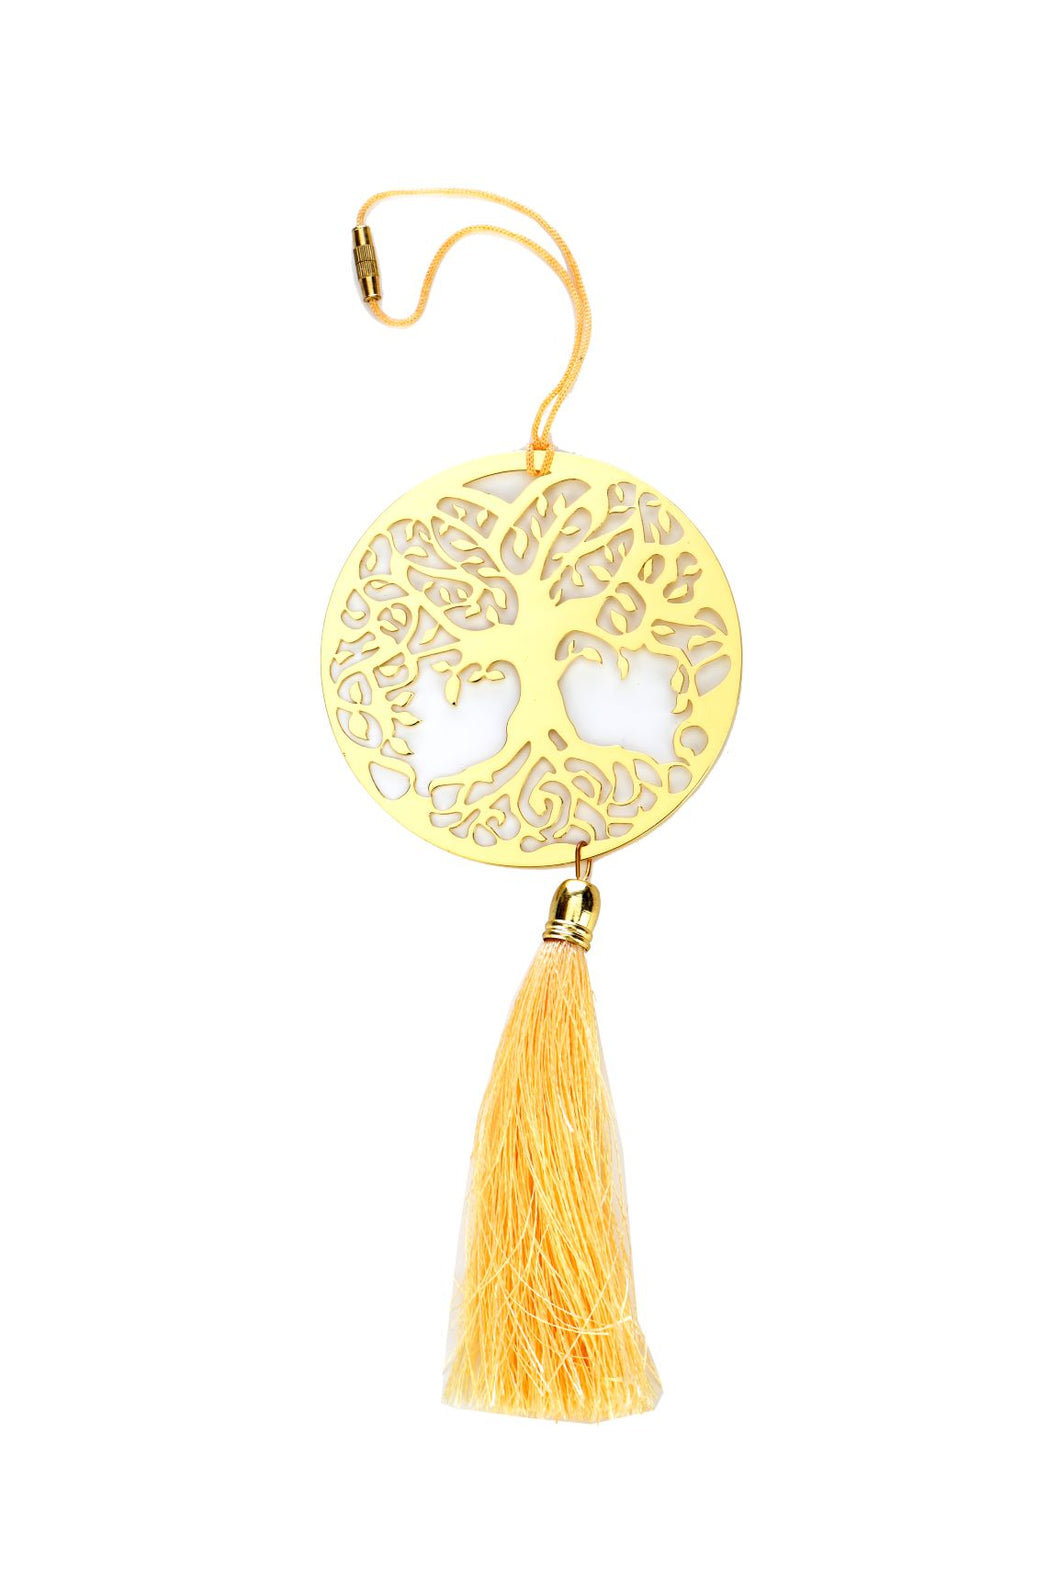 ADORAA's Tree of Life Car rear view mirror hanging décor accessories in Brass